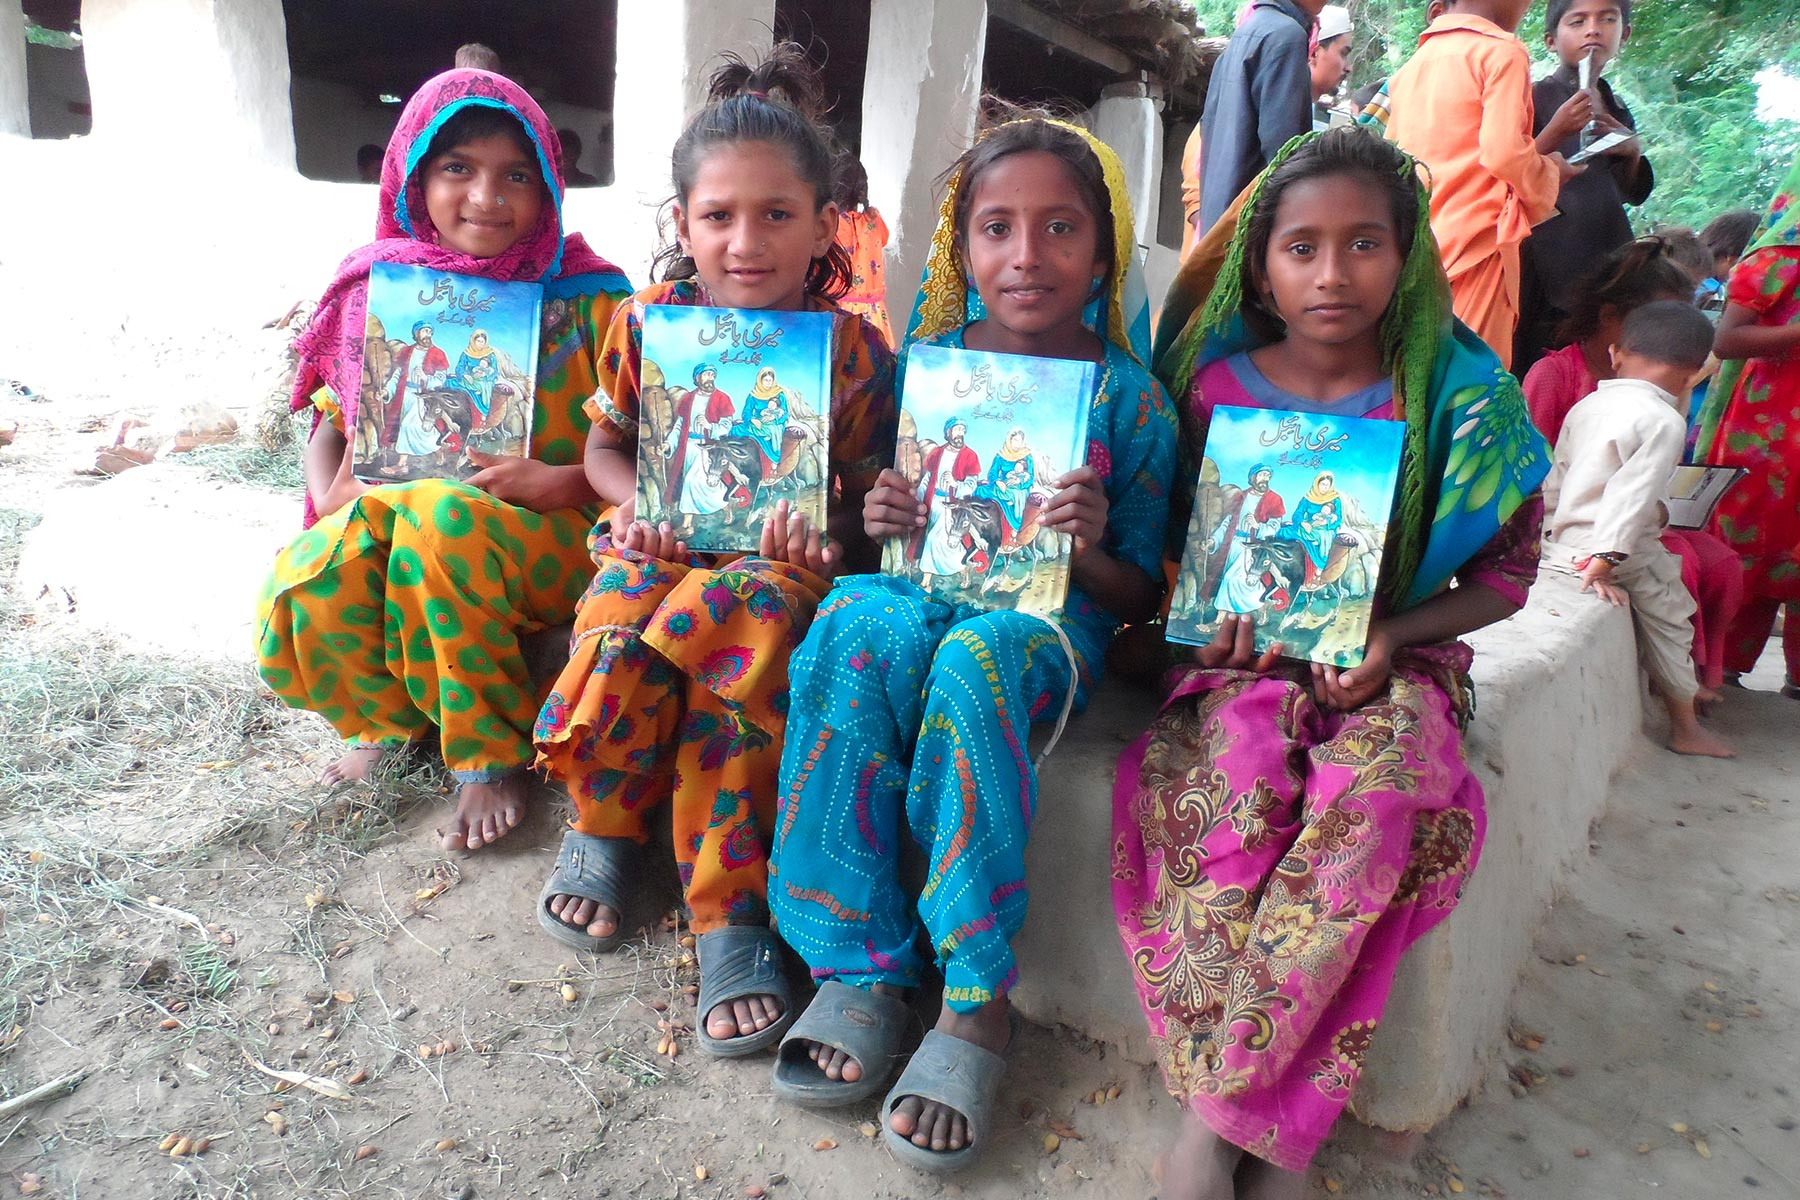 Four girls holding up books